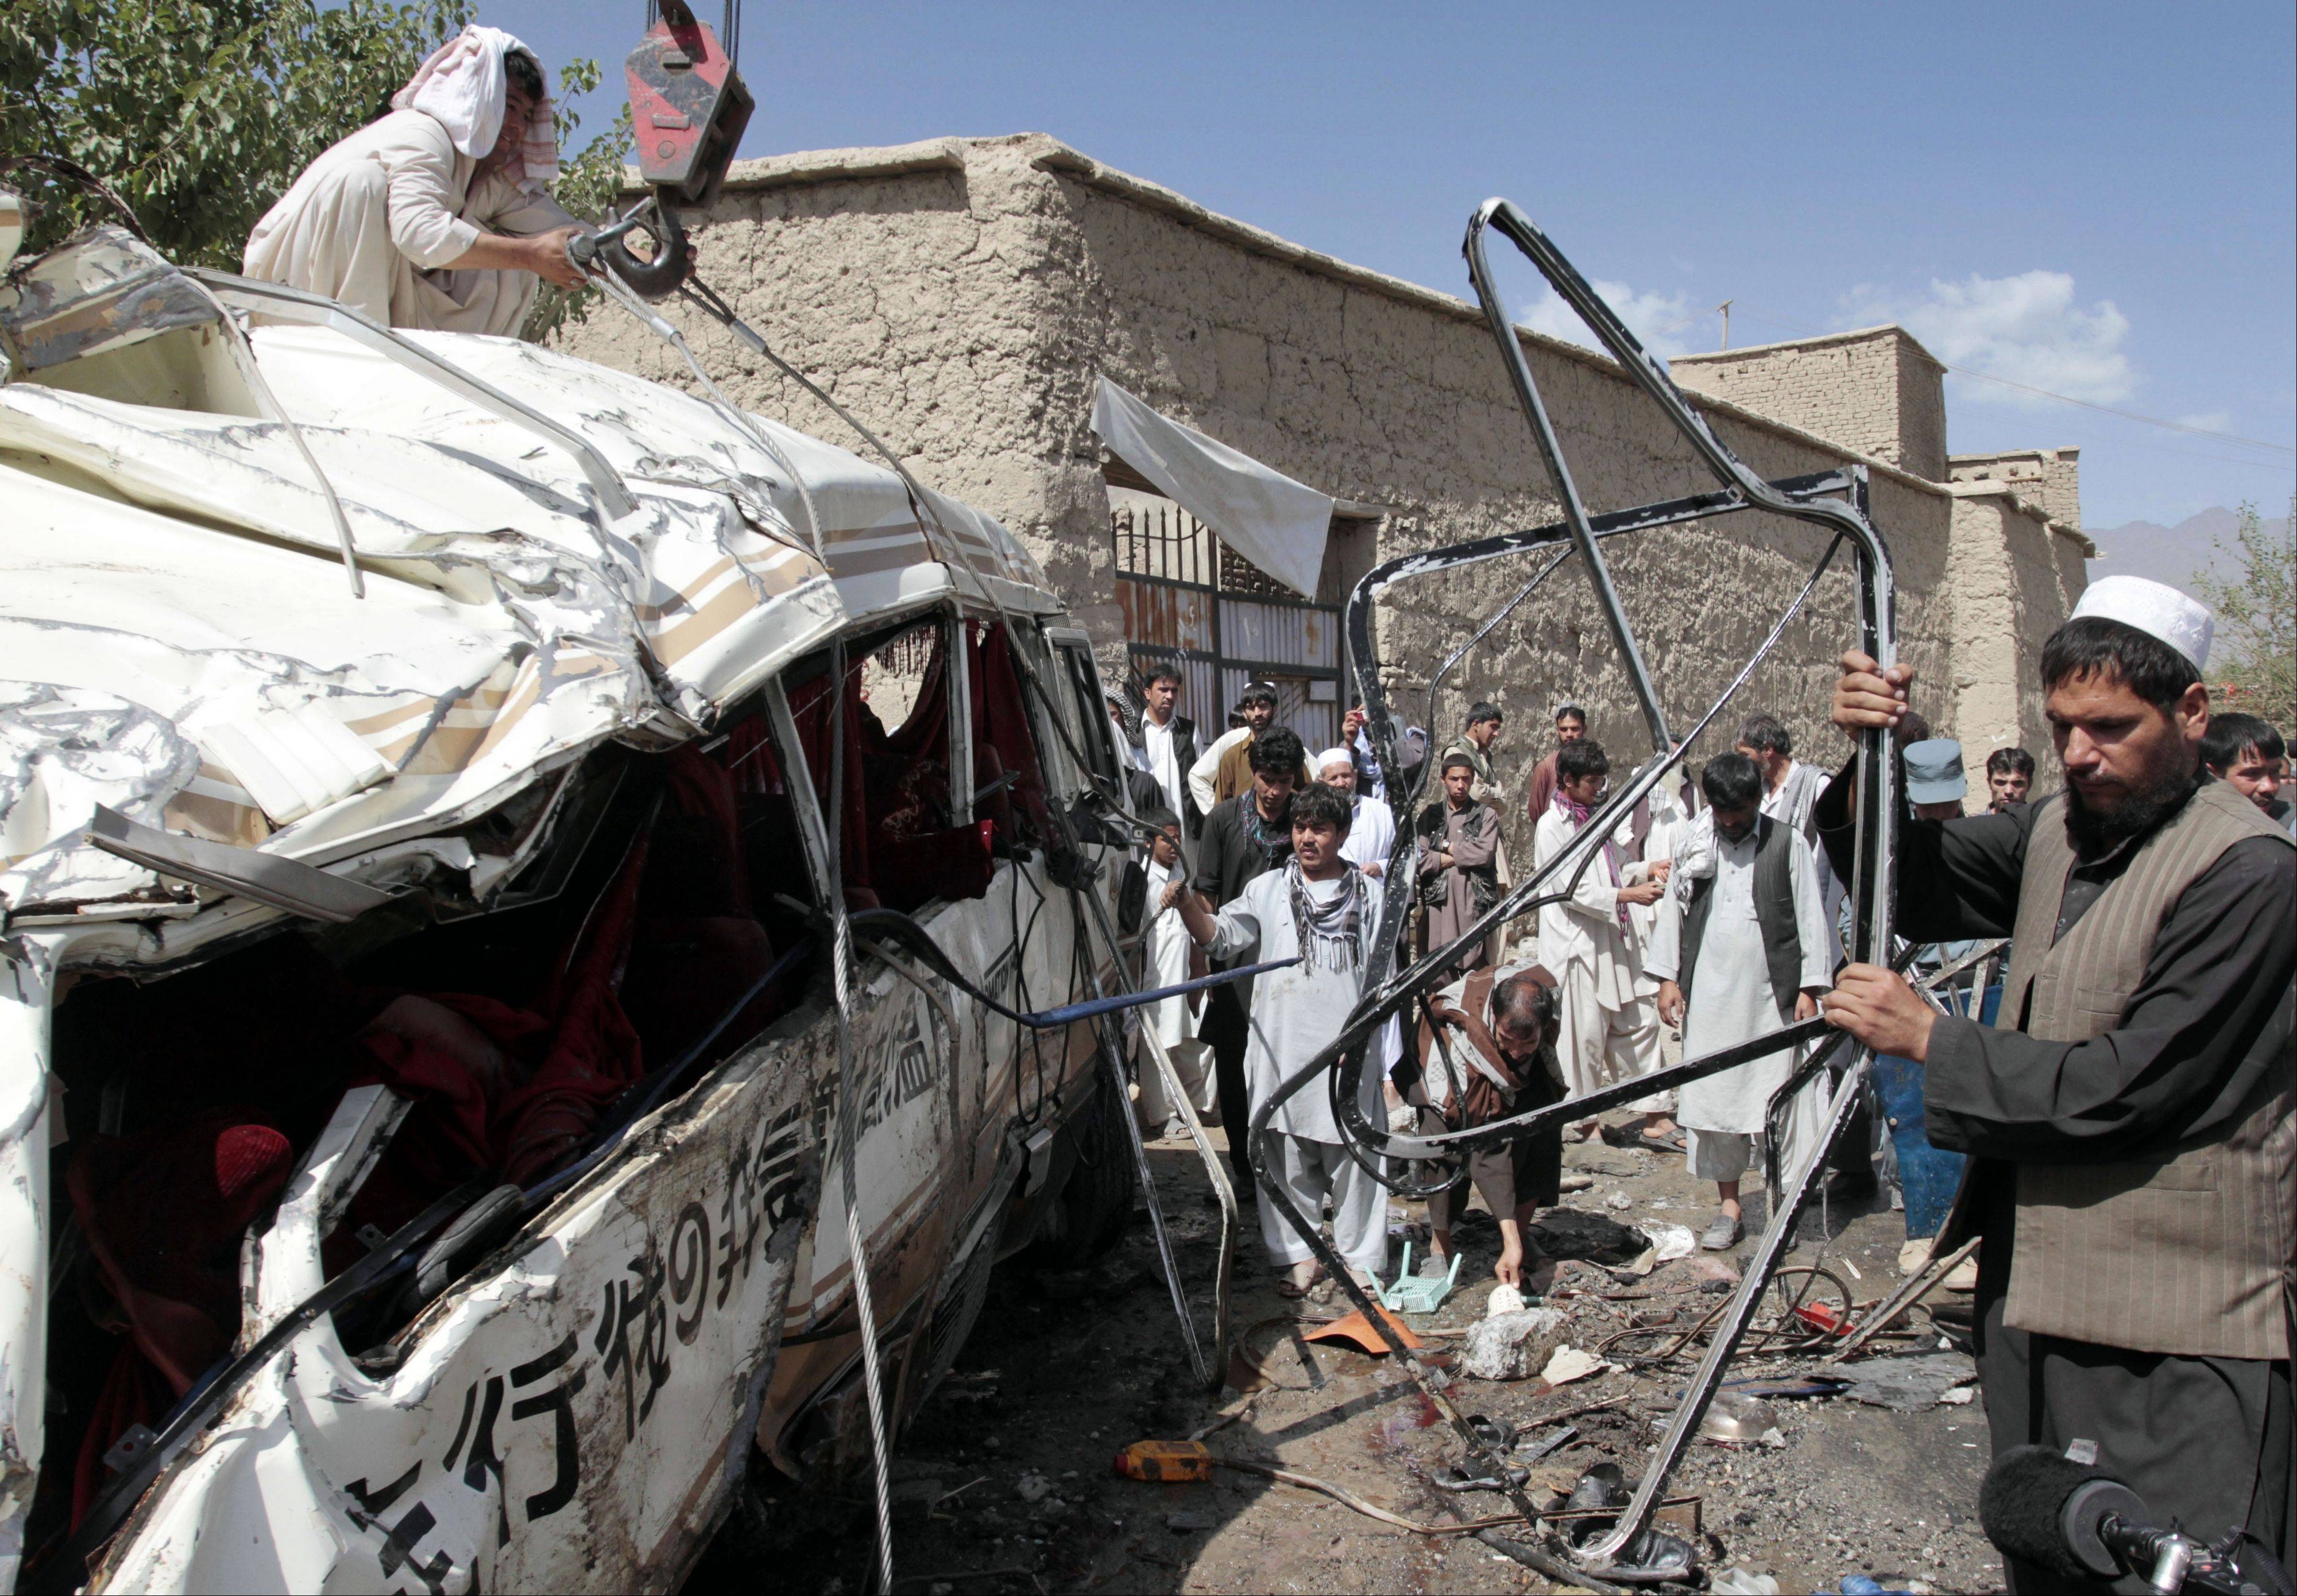 Associated Press/Aug. 7, 2012 Men collect parts of a damaged bus, which was hit by a remote control bomb on the outskirts of Kabul, Afghanistan.